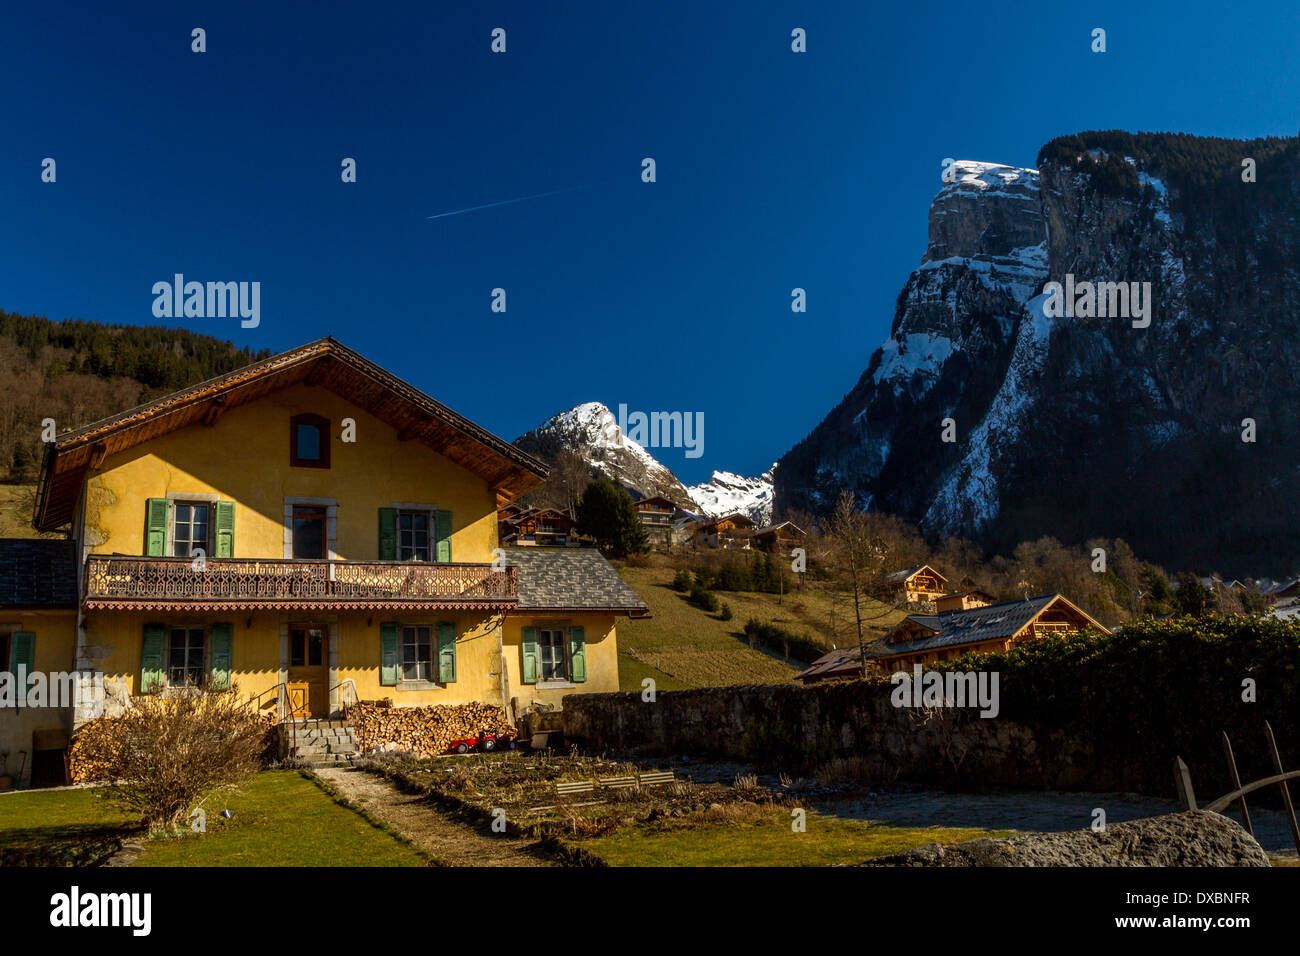 Typical French chalet Rhône-Alpes, France - Stock Image